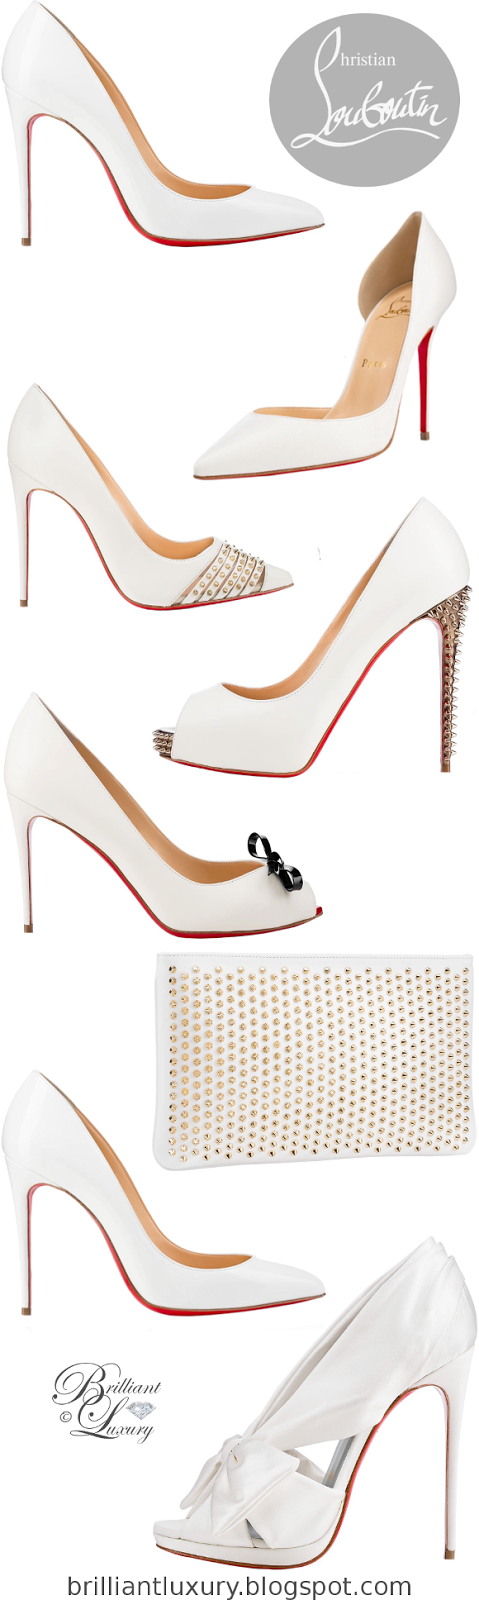 Brilliant Luxury ♦ Christian Louboutin ~ White Edition